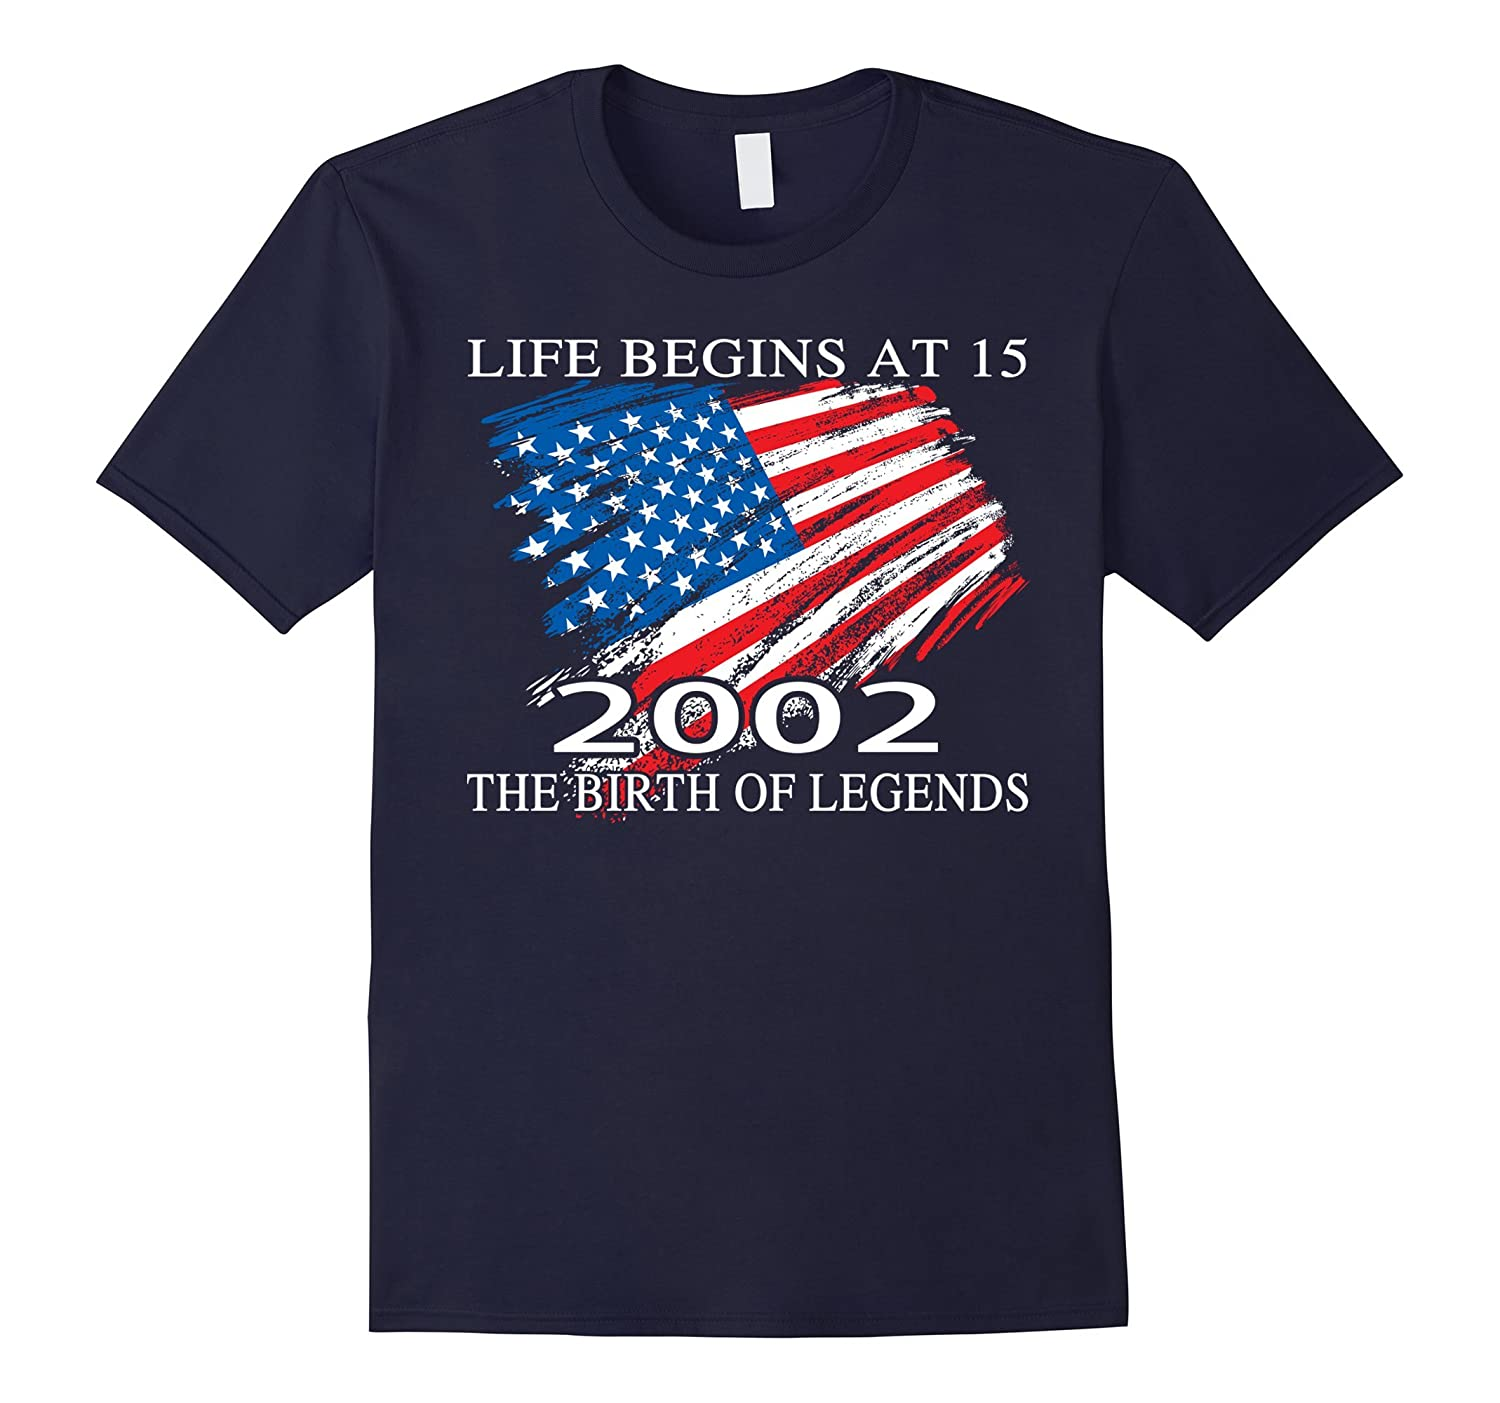 Birthday Gift For 15 Years Old 2002 T Shirt American Flag-Vaci